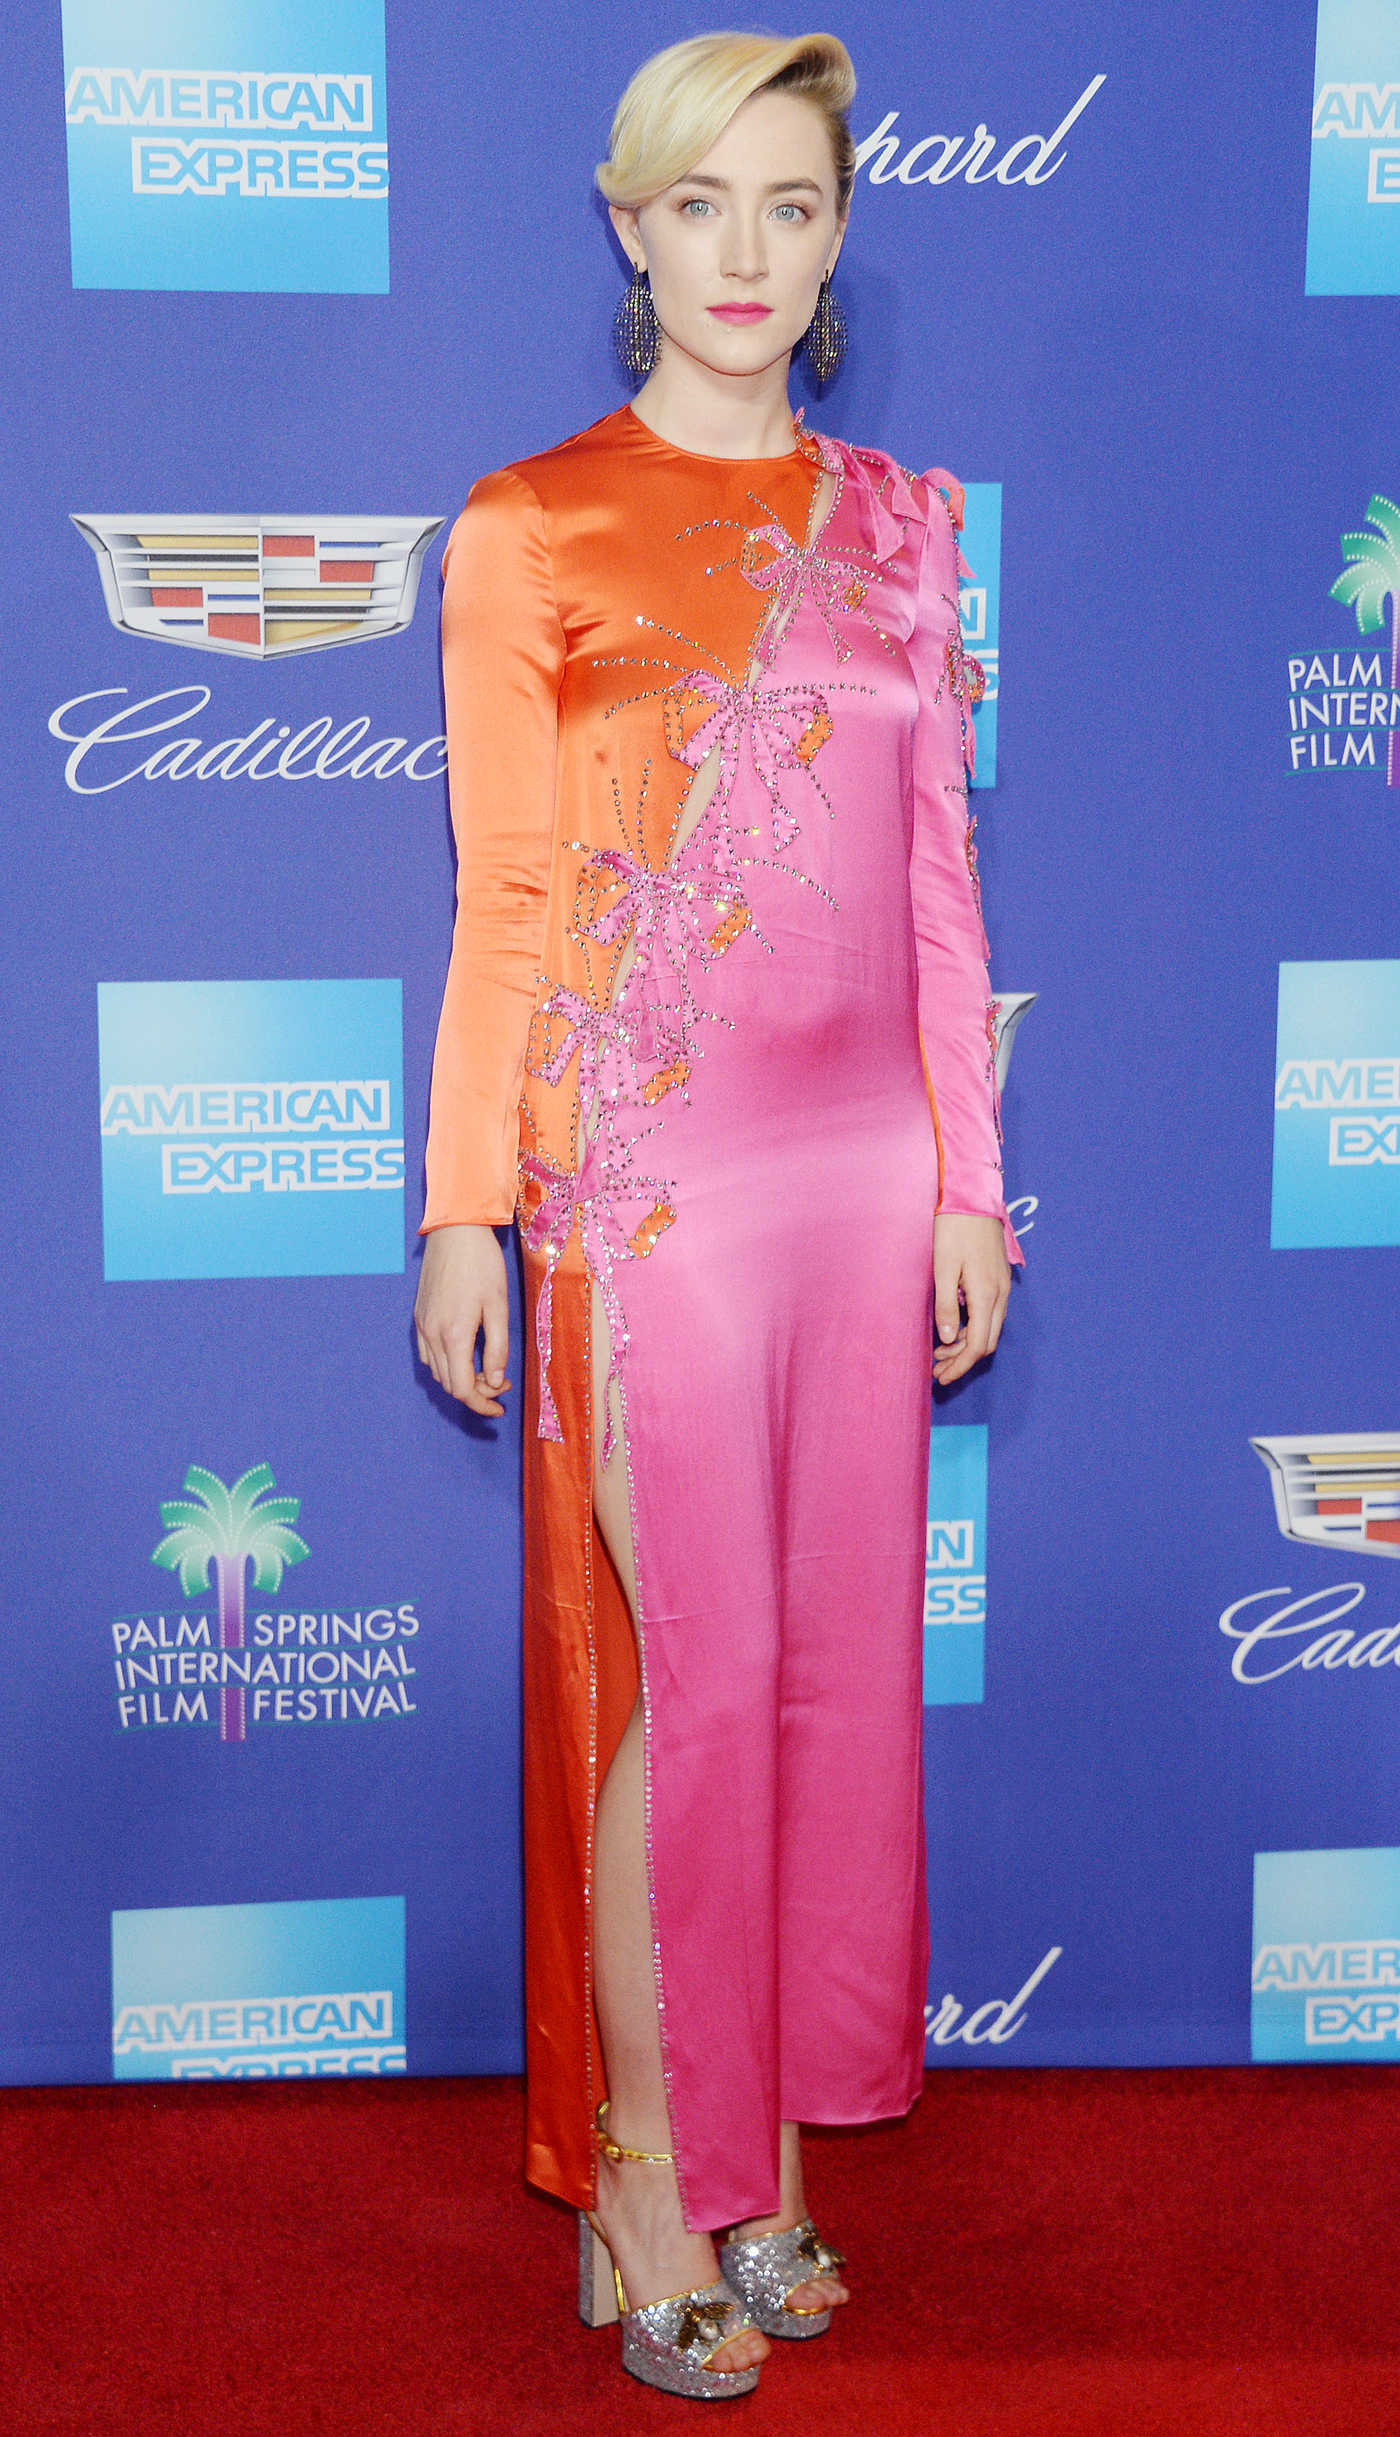 Saoirse Ronan at the 29th Annual Palm Springs International Film Festival Awards Gala in Palm Springs 01/02/2018